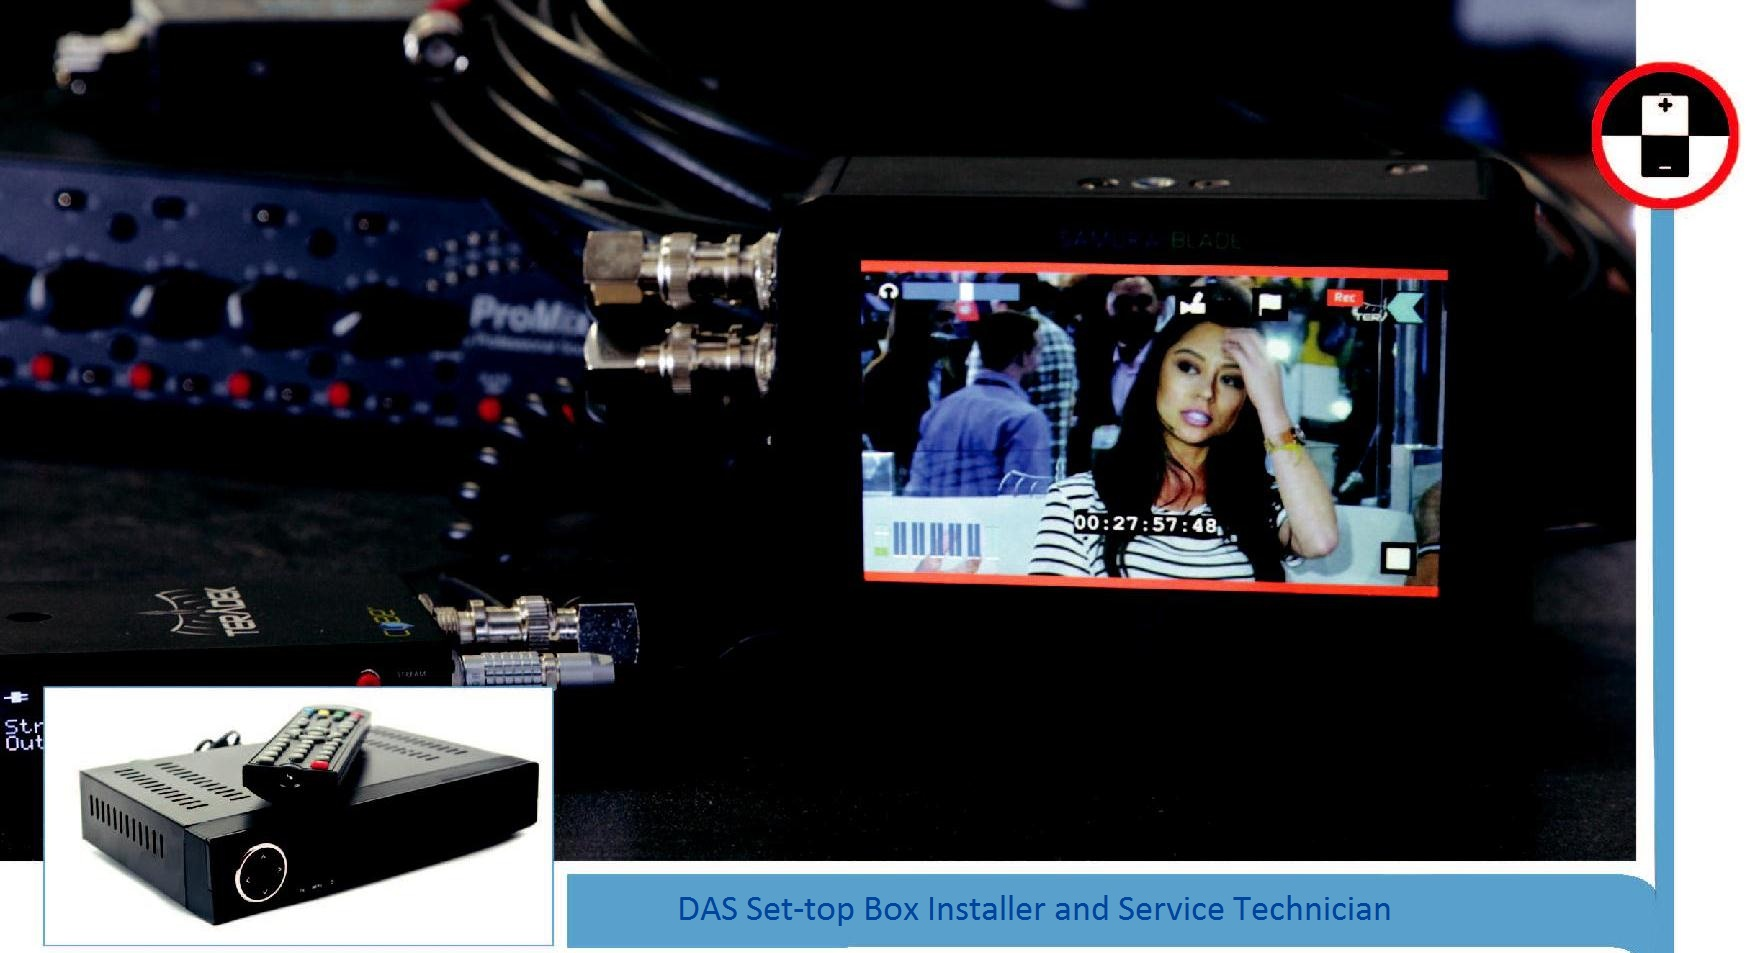 DAS Set-top box technician installs set-top boxes and provides after sales service for Digital Addressable System (DAS) type.  The individual at work installs the set-top box at customer's premises; addresses the field serviceable complaints and